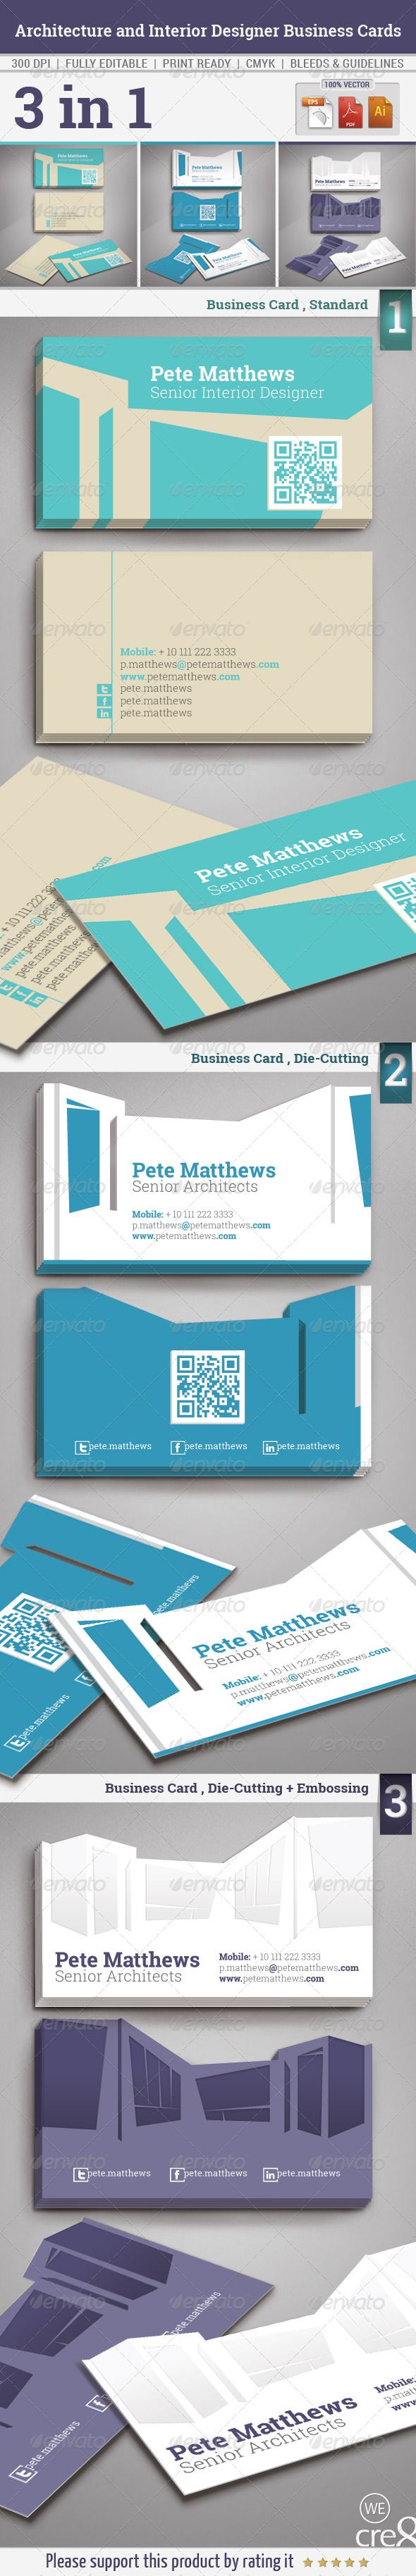 Architecture And Interior Designer Business Cards GraphicRiver Description This Is A Complete Print Ready